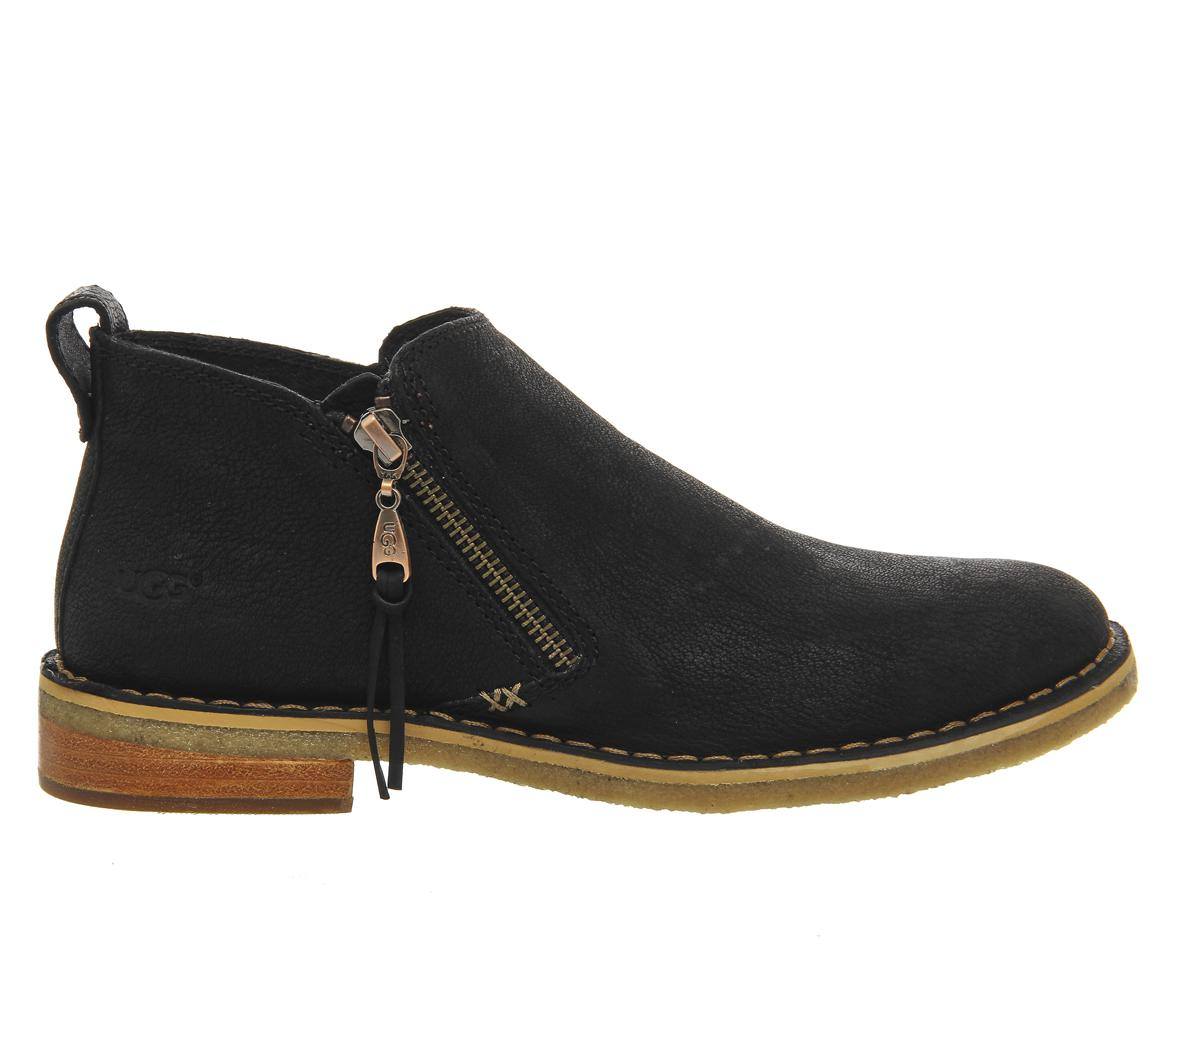 0c42d1b0094 Ugg Black Clementine Ankle Boots